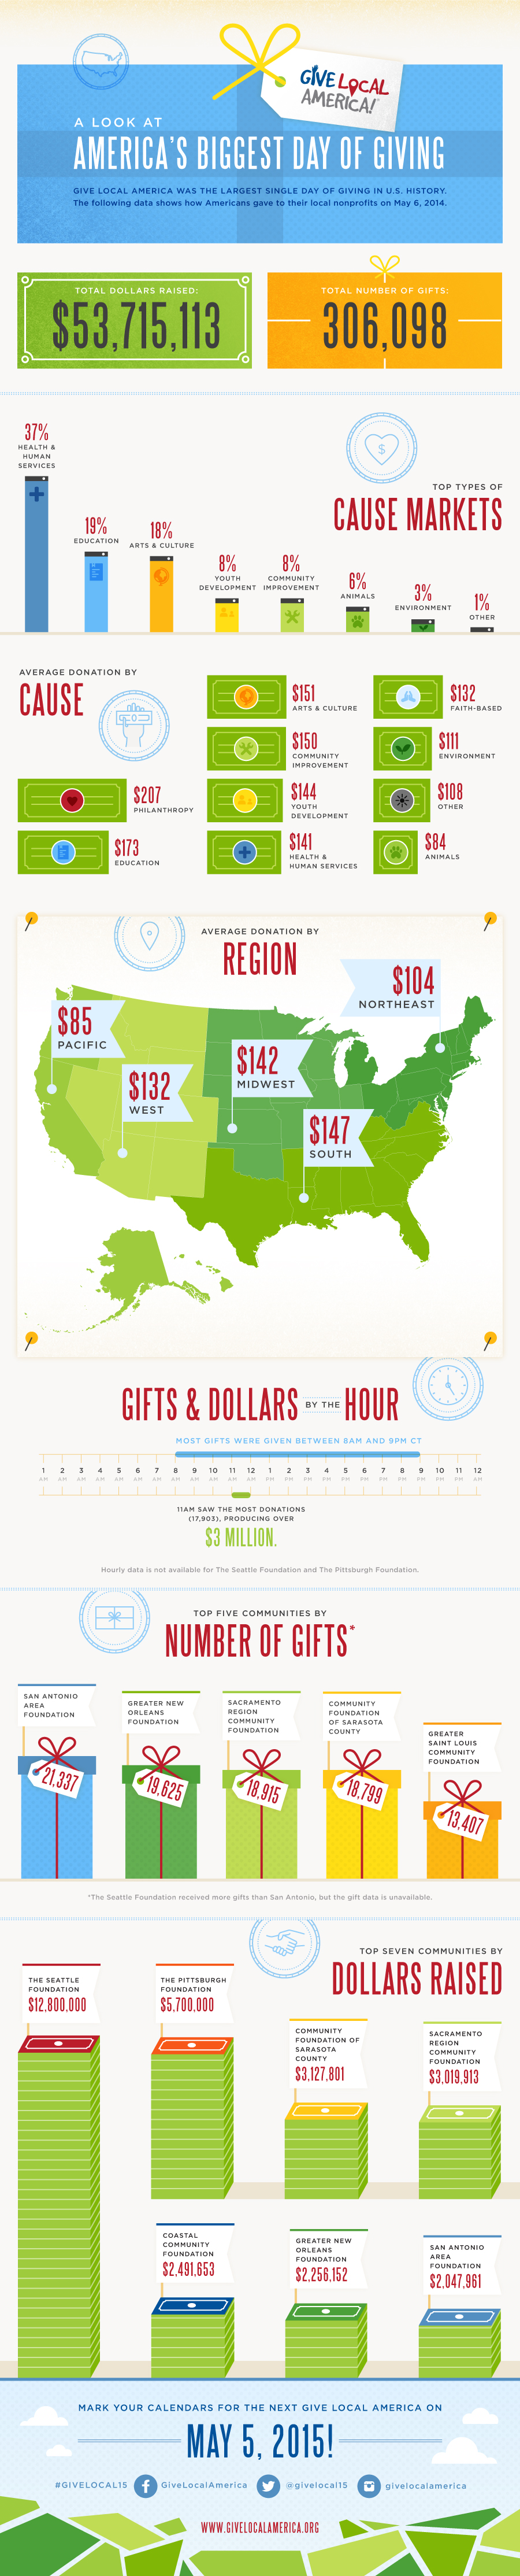 A Look At Give Local America 2014